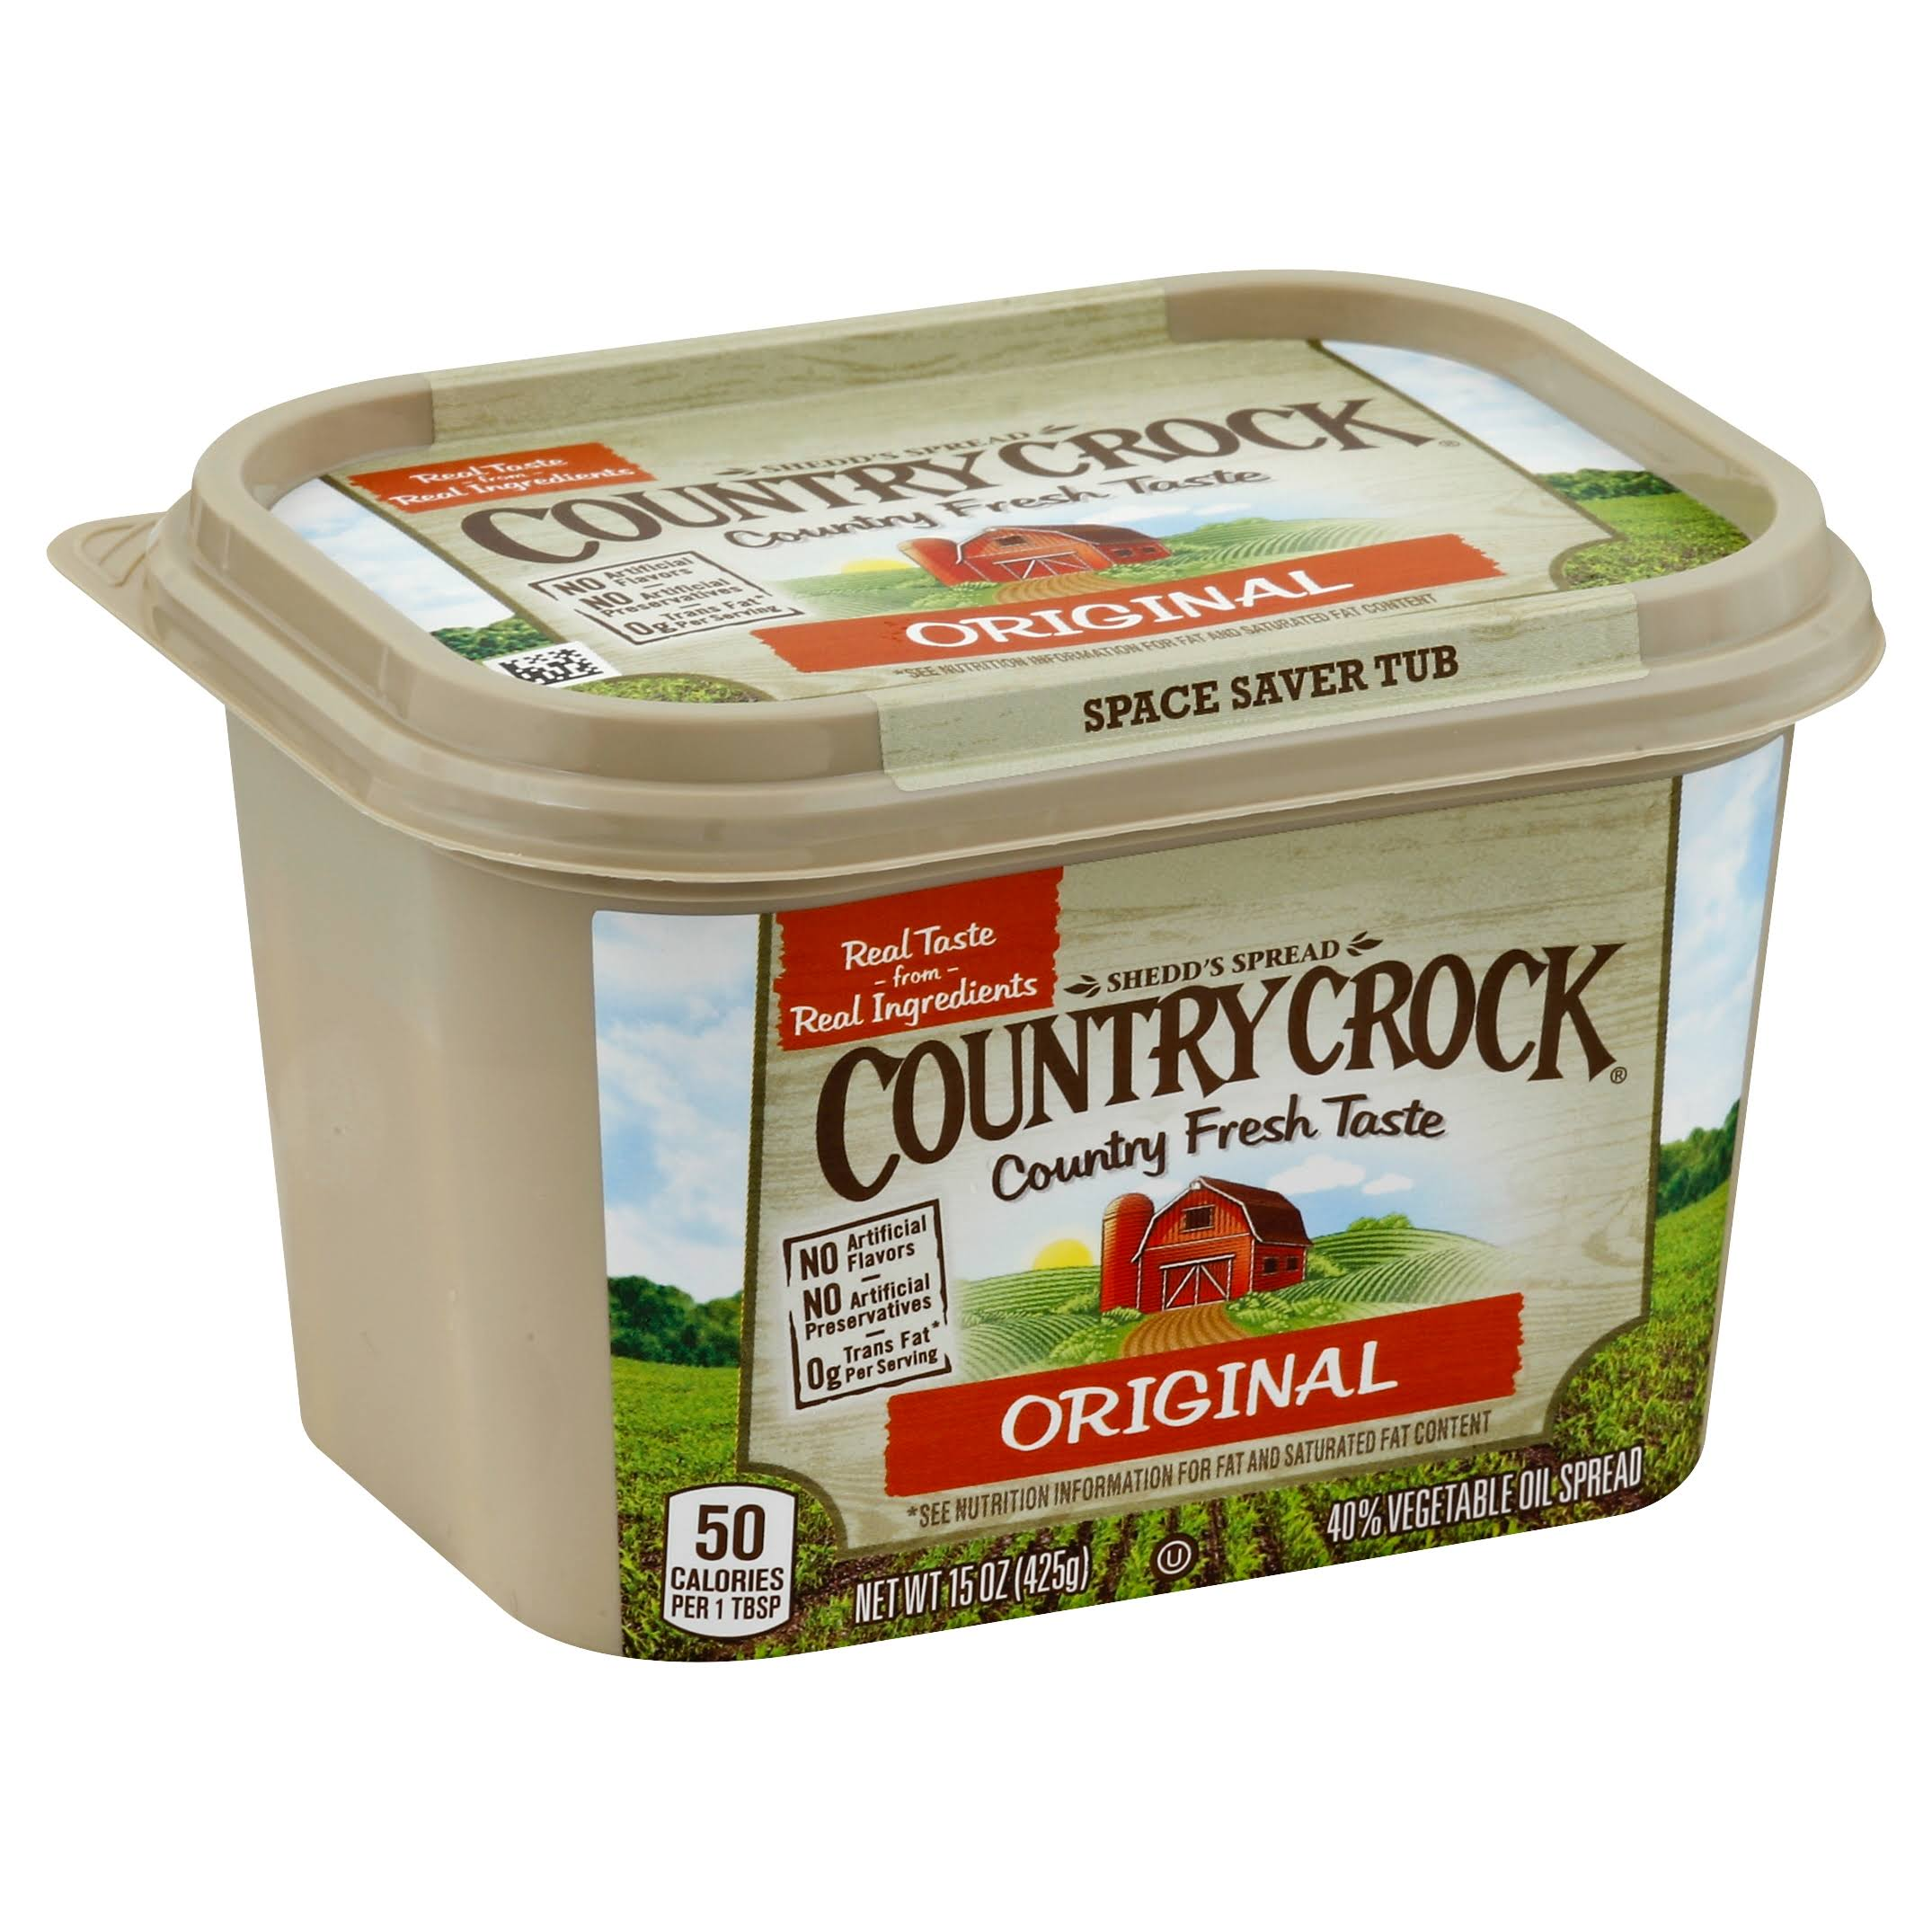 Country Crock Original Vegetable Oil Spread - 15 oz